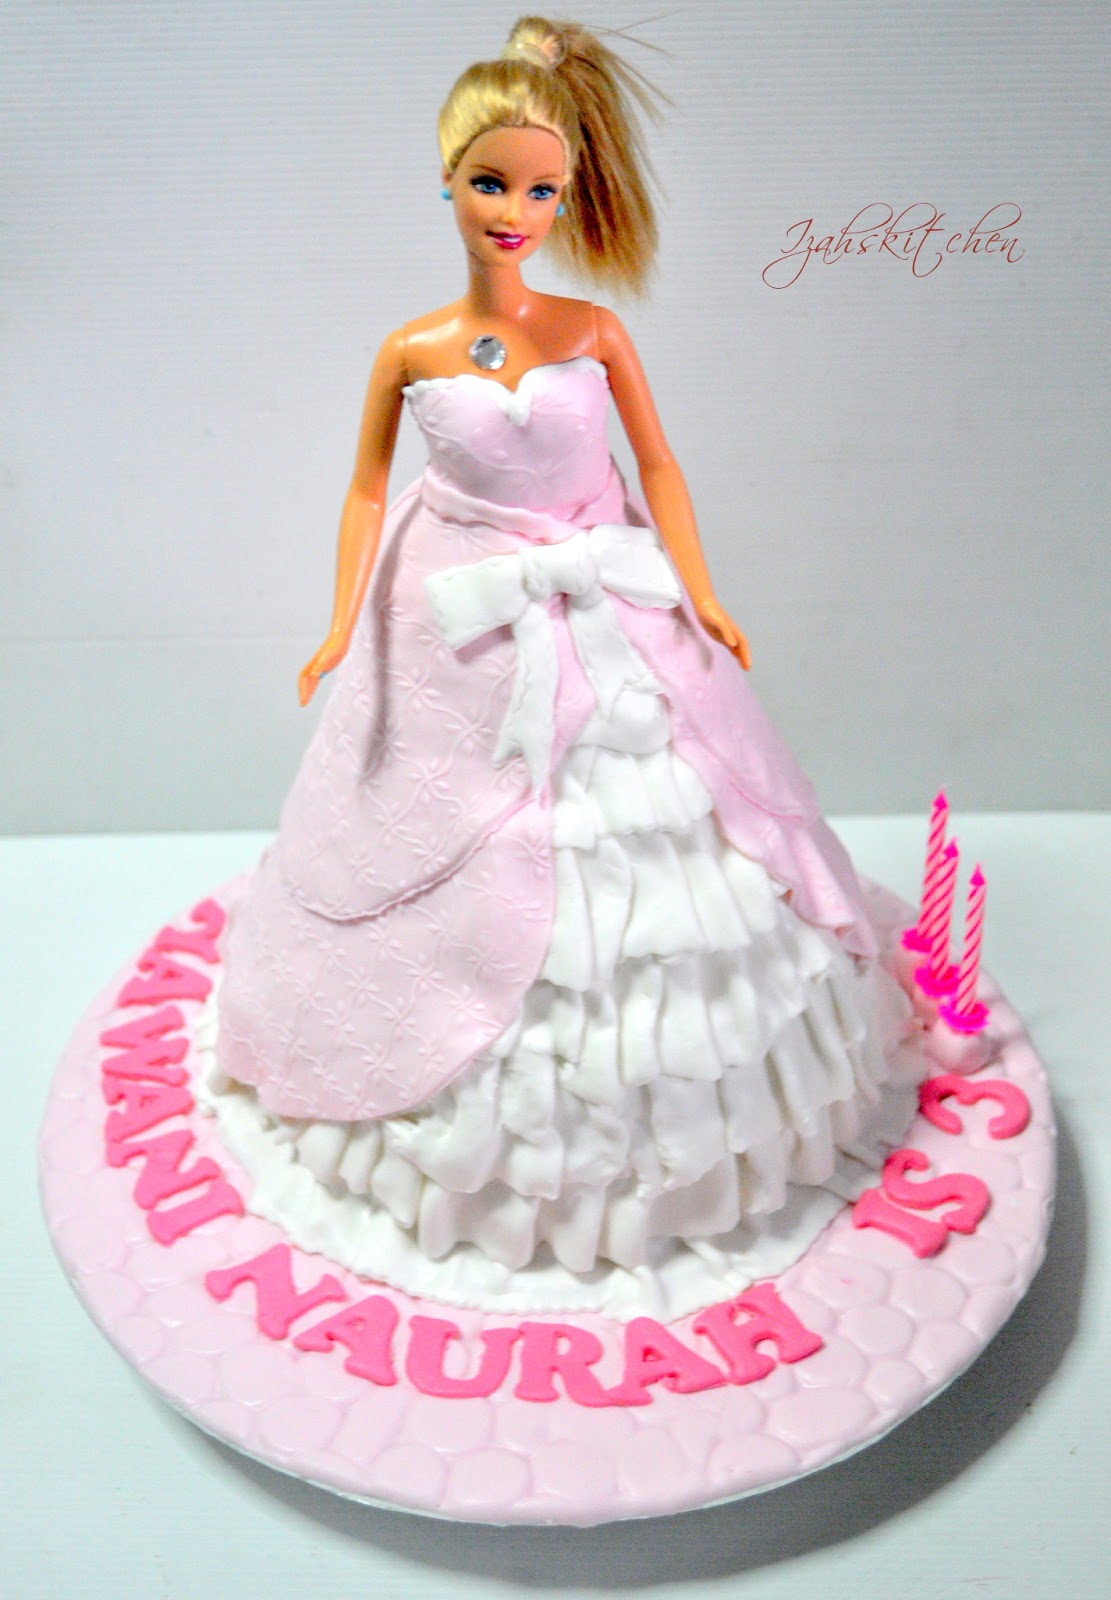 Barbie Cake Images Doll : Izah s Kitchen: Barbie doll cake for Hawani